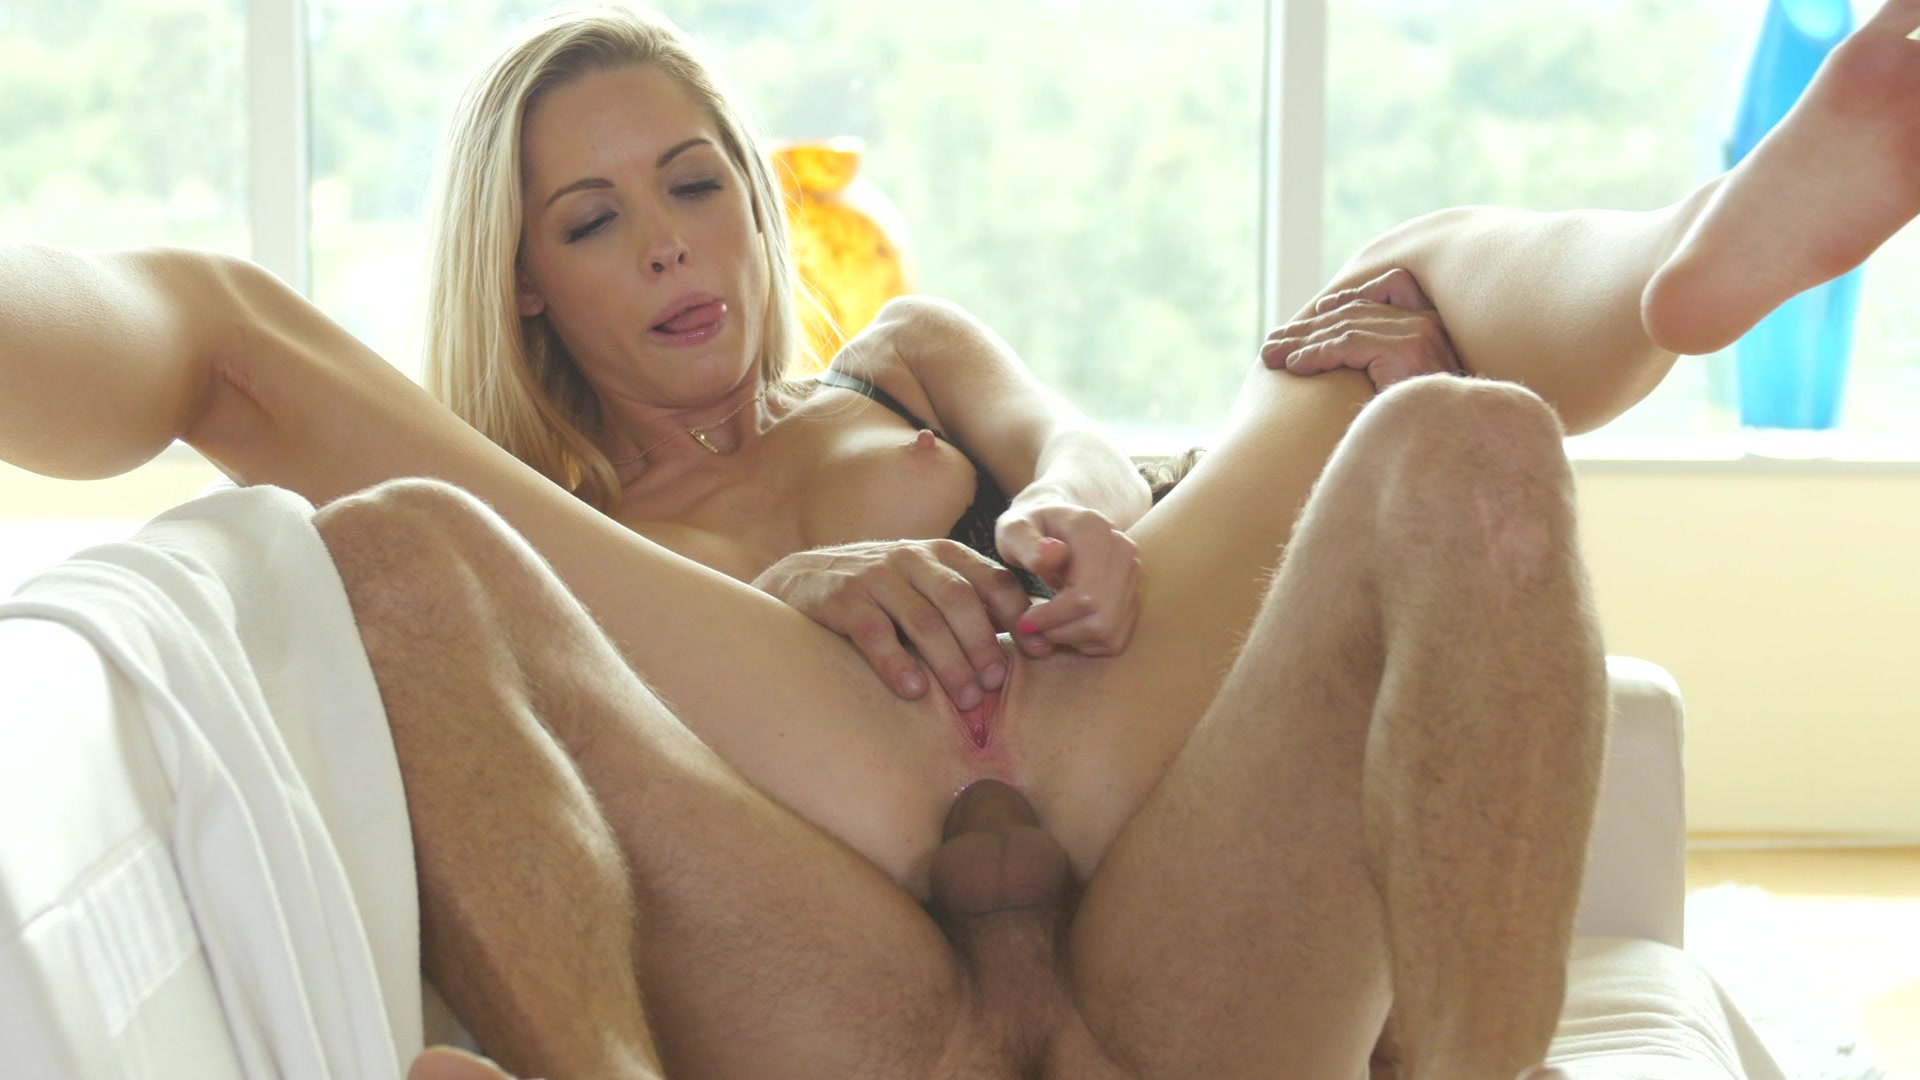 Blonde Babe Takes the Big Hard Dick of Mr. Pete Inside Her Tight Asshole